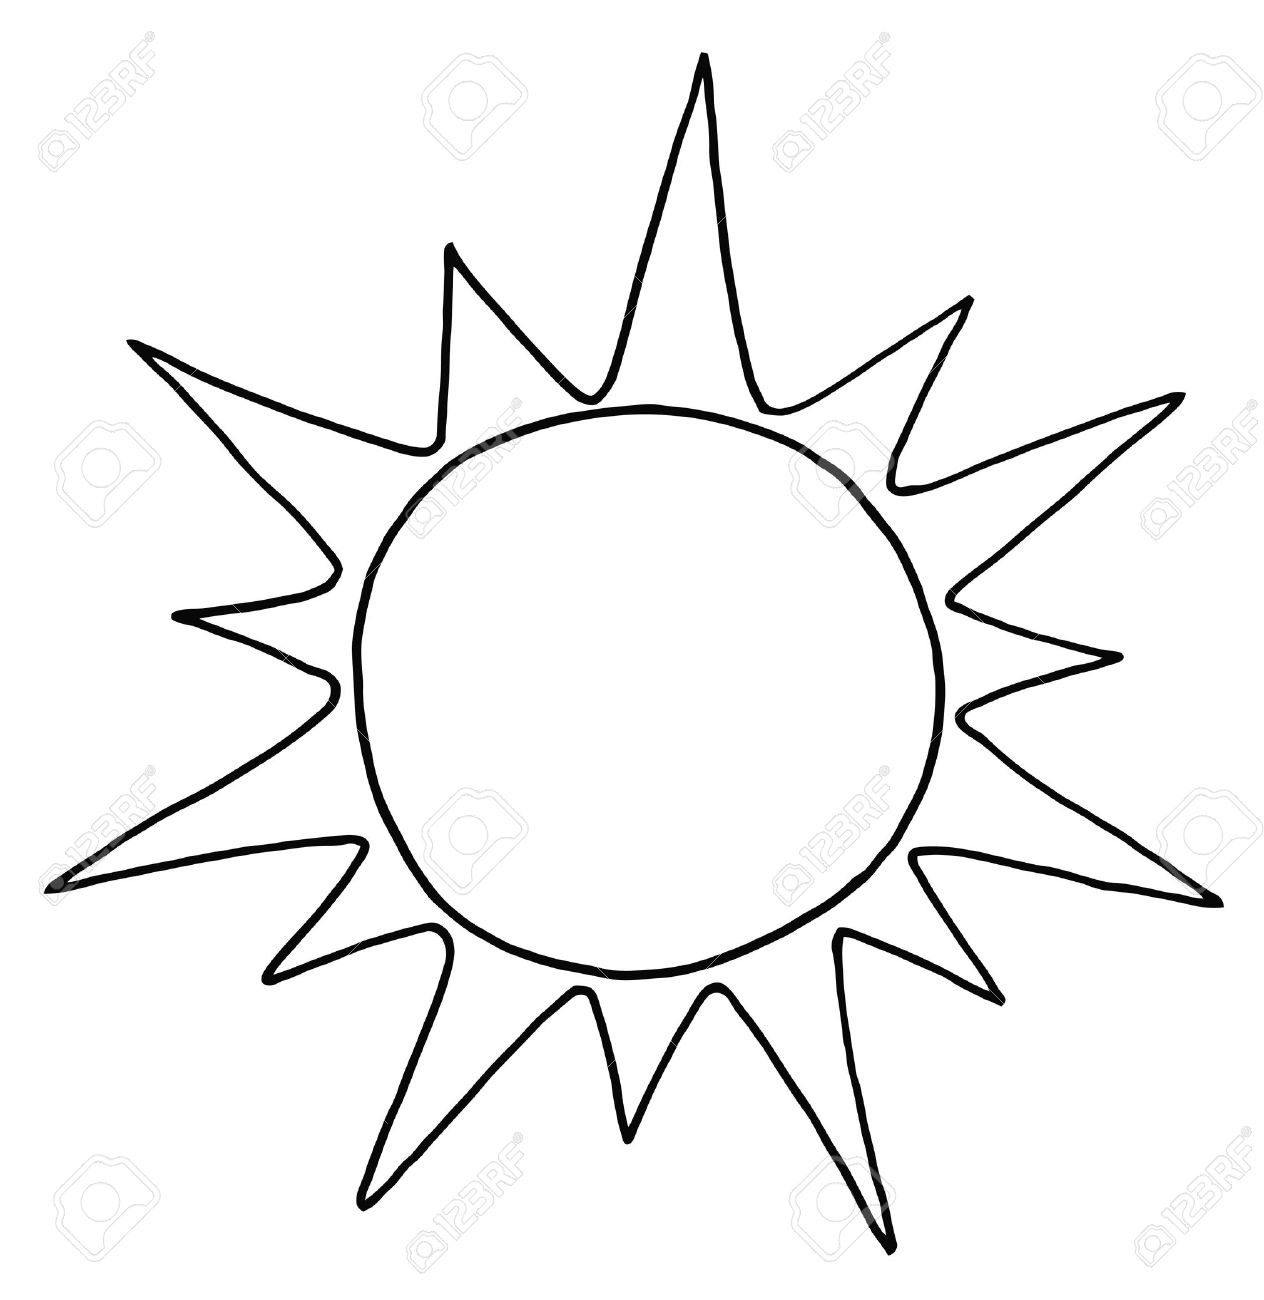 Sun bw clipart vector library library 17+ Sun Clip Art Black And White | ClipartLook vector library library